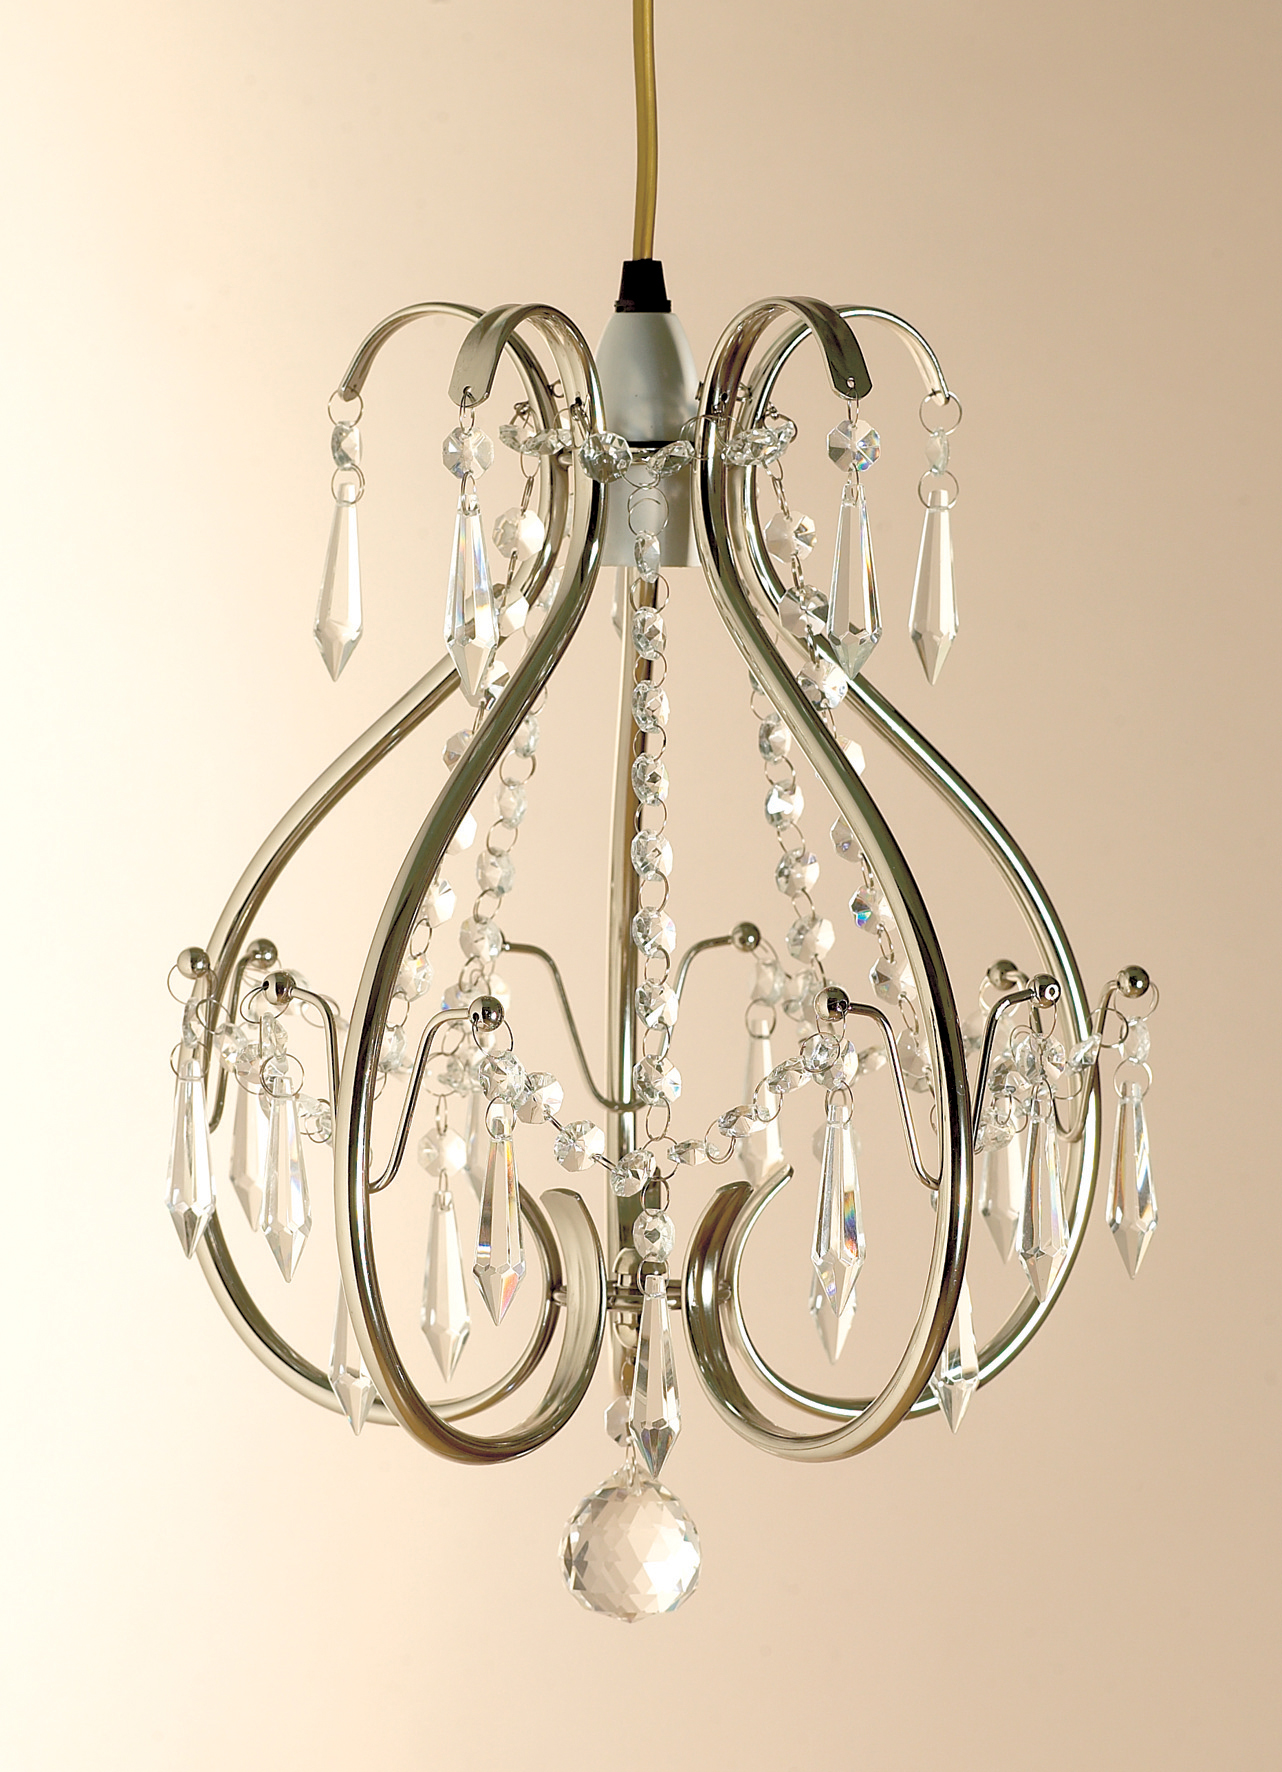 PAPAYA Crystal Mini Chandelier Lighting 1 Light Chrome Chandeliers Iron Ceiling Light Fixture